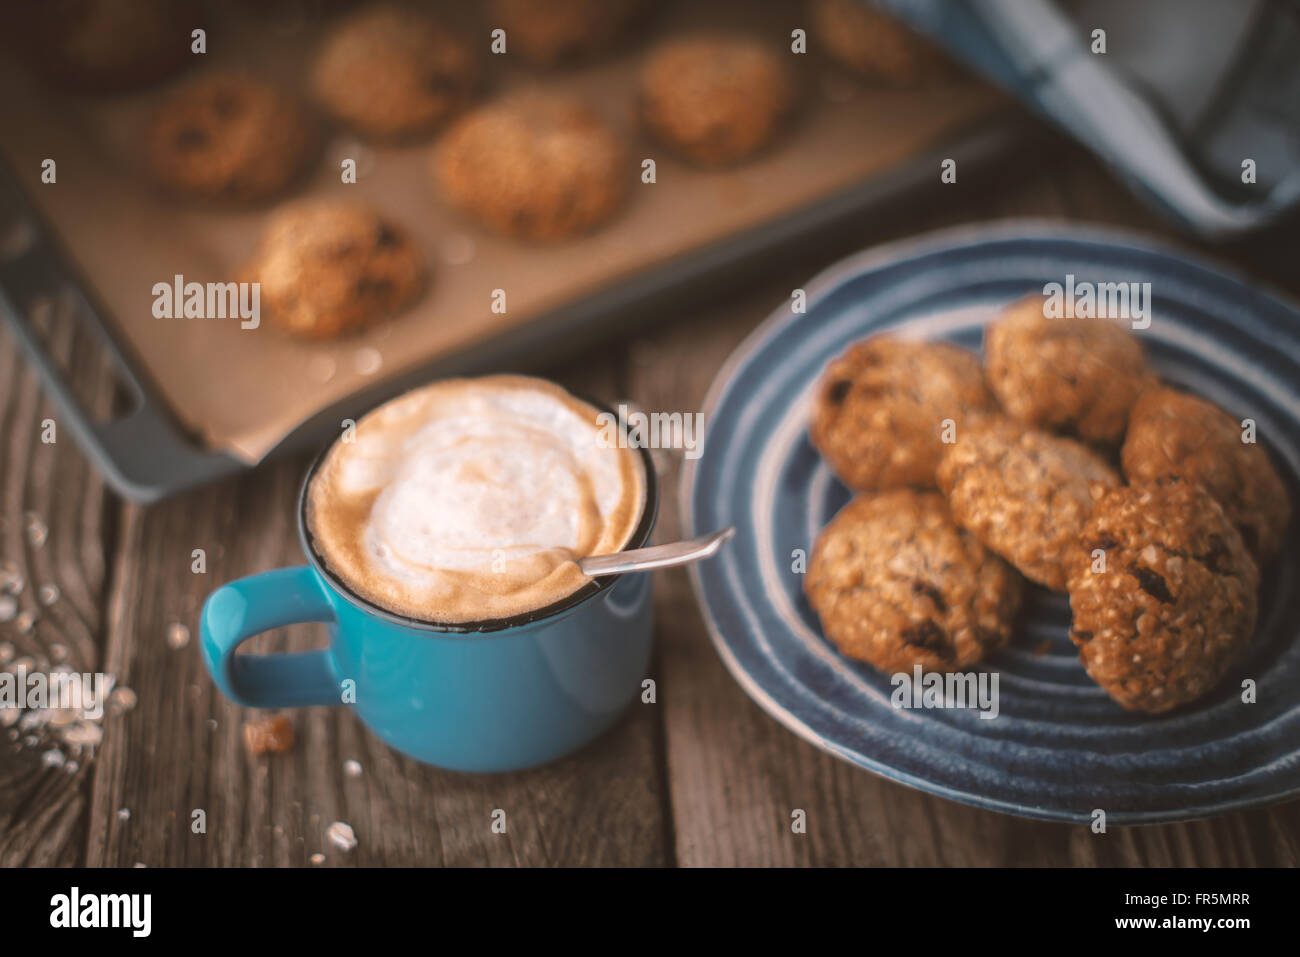 Baking tray and a plate of oatmeal cookies on the wooden table horizontal - Stock Image